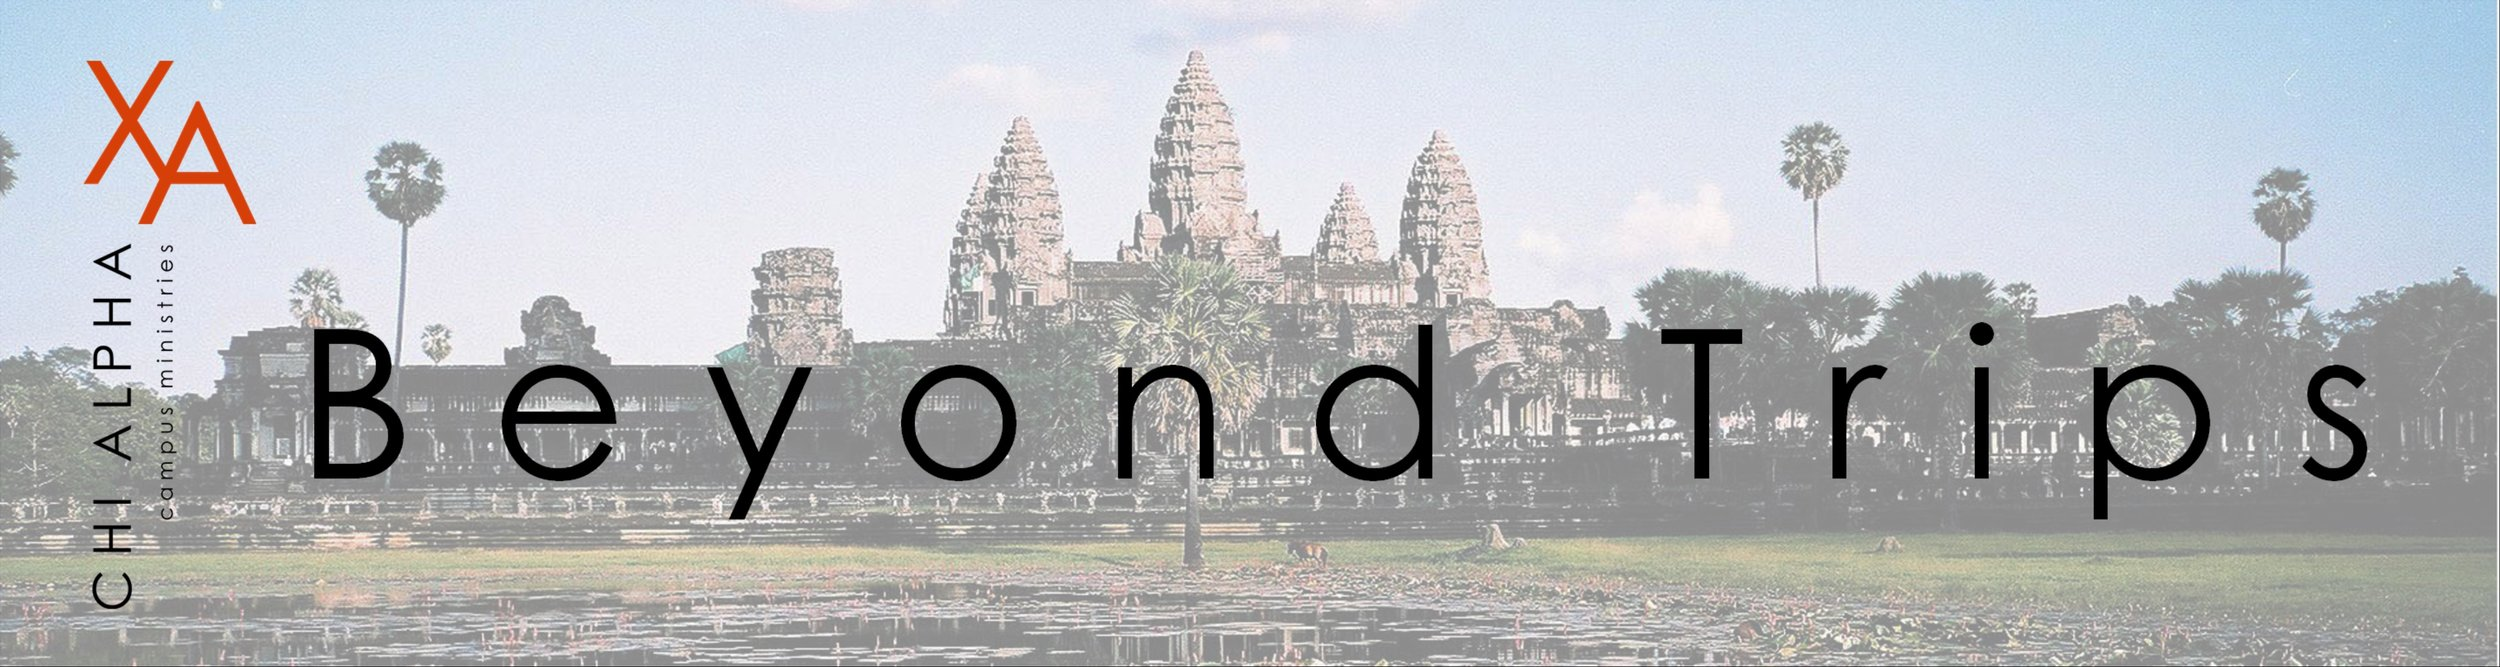 beyond trips mission trip cambodia missionary send a student support chi alpha campus ministry college students university christian fellowship oregon state university osu